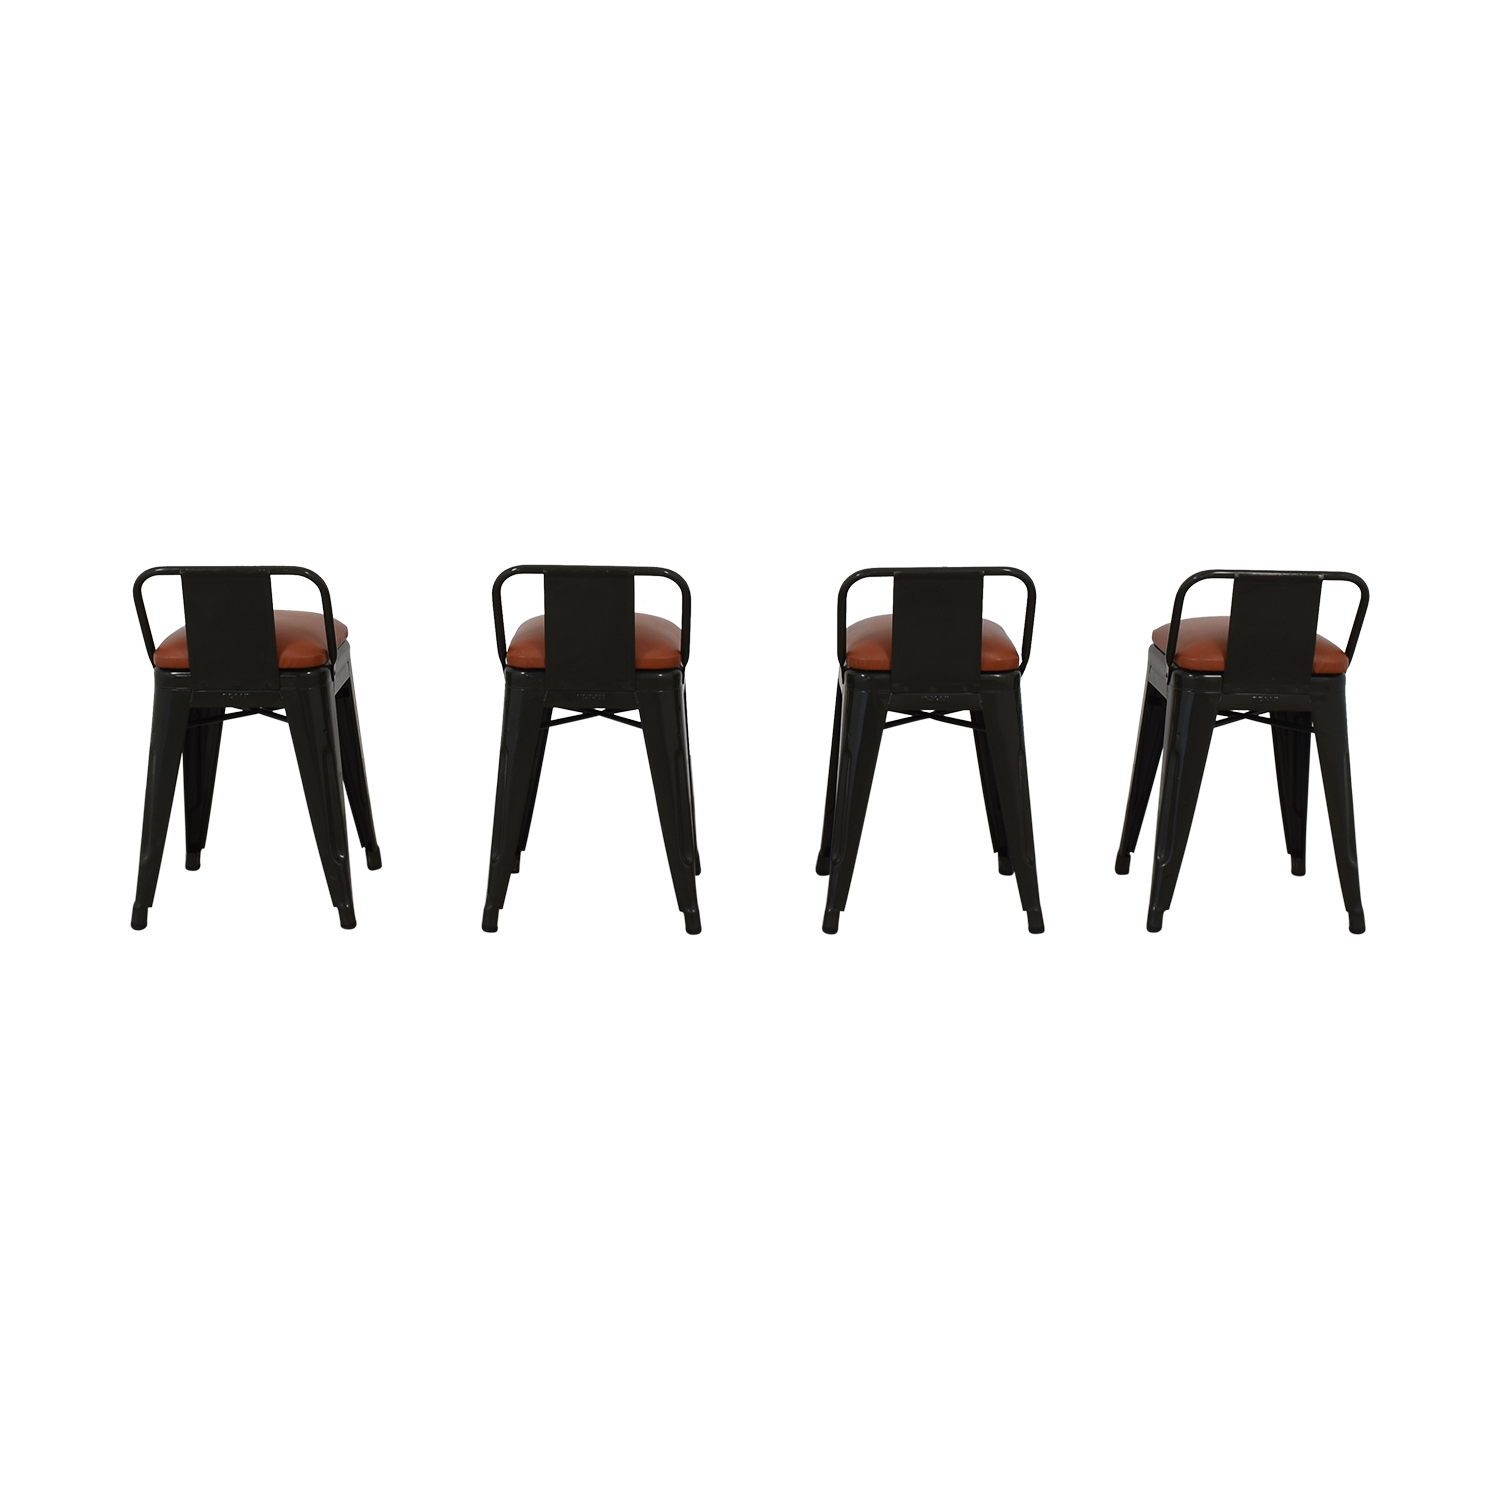 Tolix Tolix Industrial Stools coupon